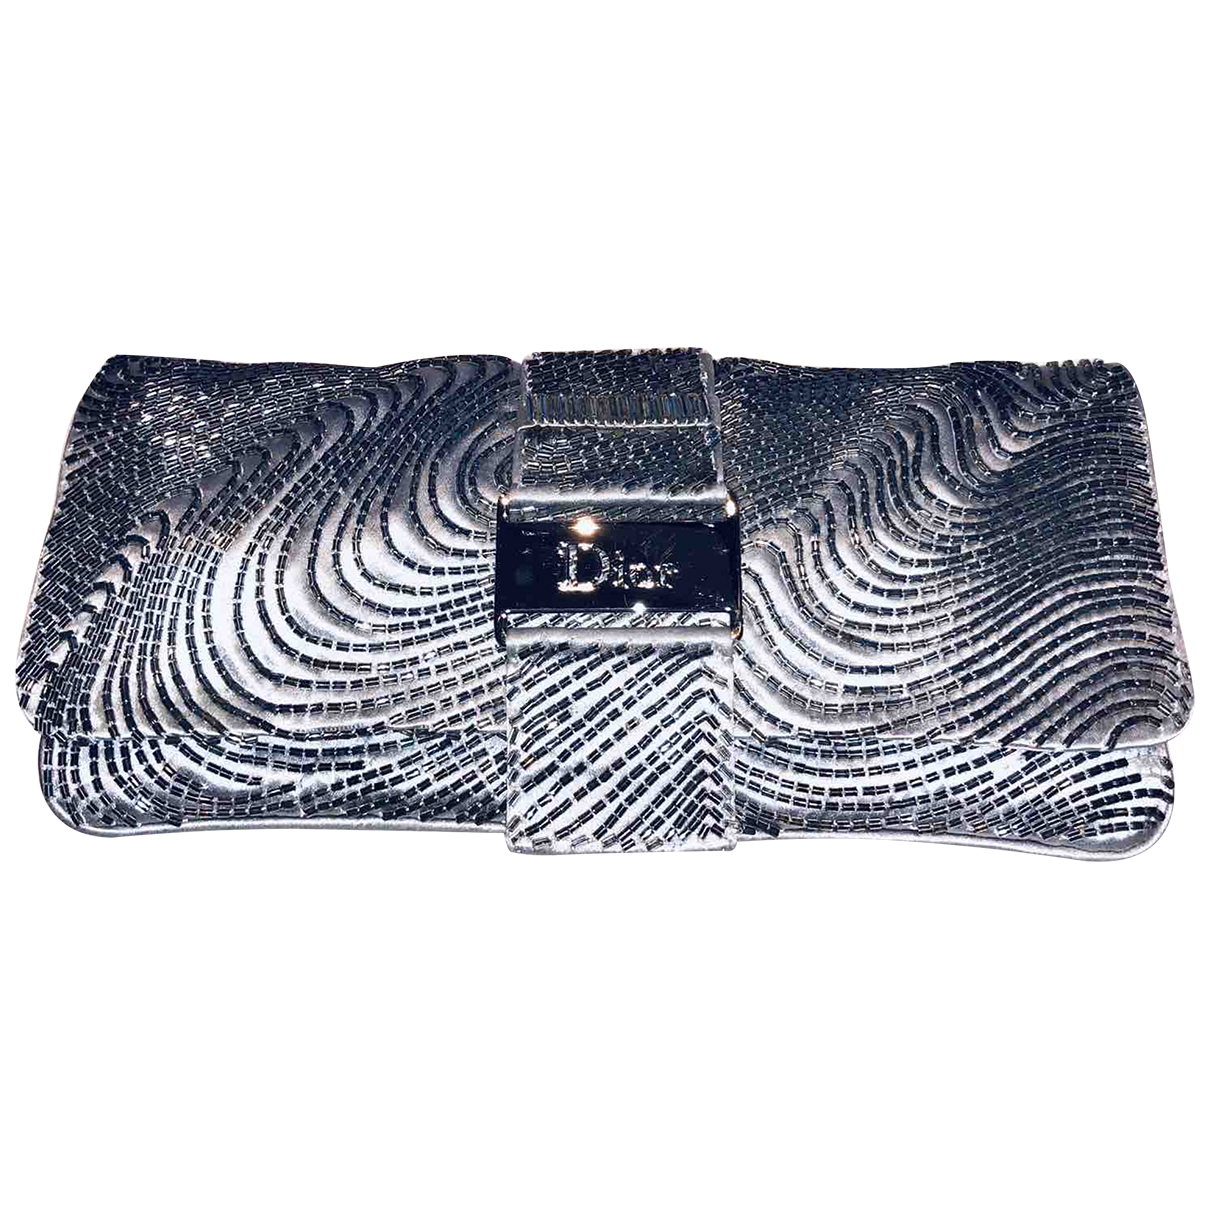 Dior \N Clutch in  Silber Seide